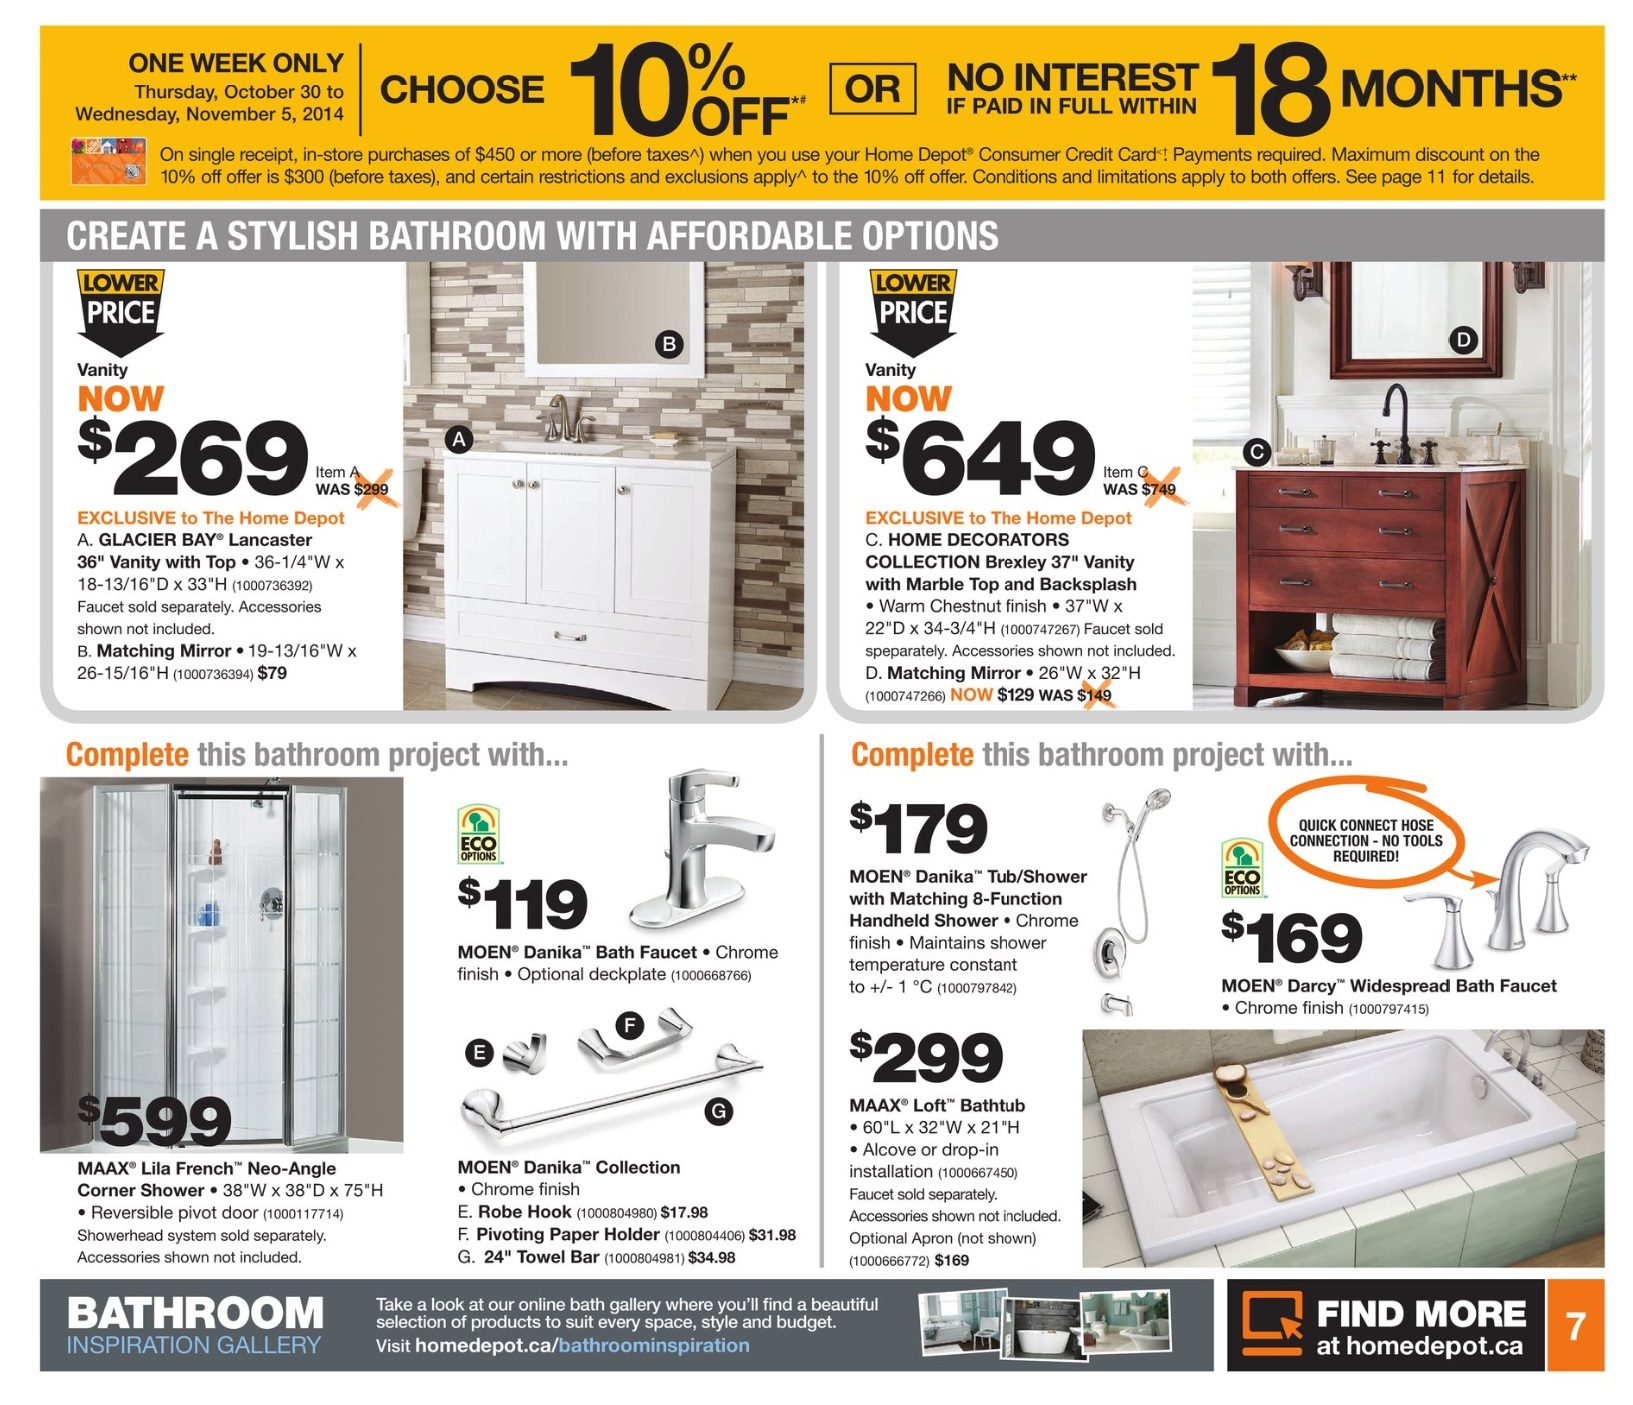 Home Depot Weekly Flyer Weekly Oct 30 – Nov 5 RedFlagDeals